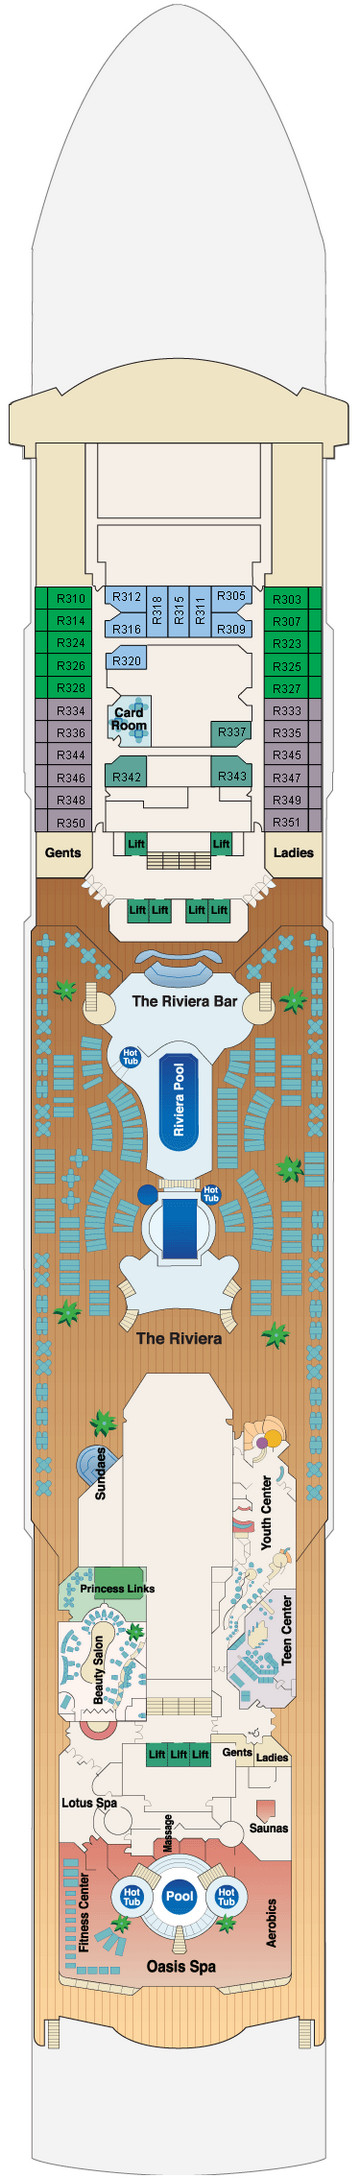 Dawn Princess Riviera Deck 12 layout